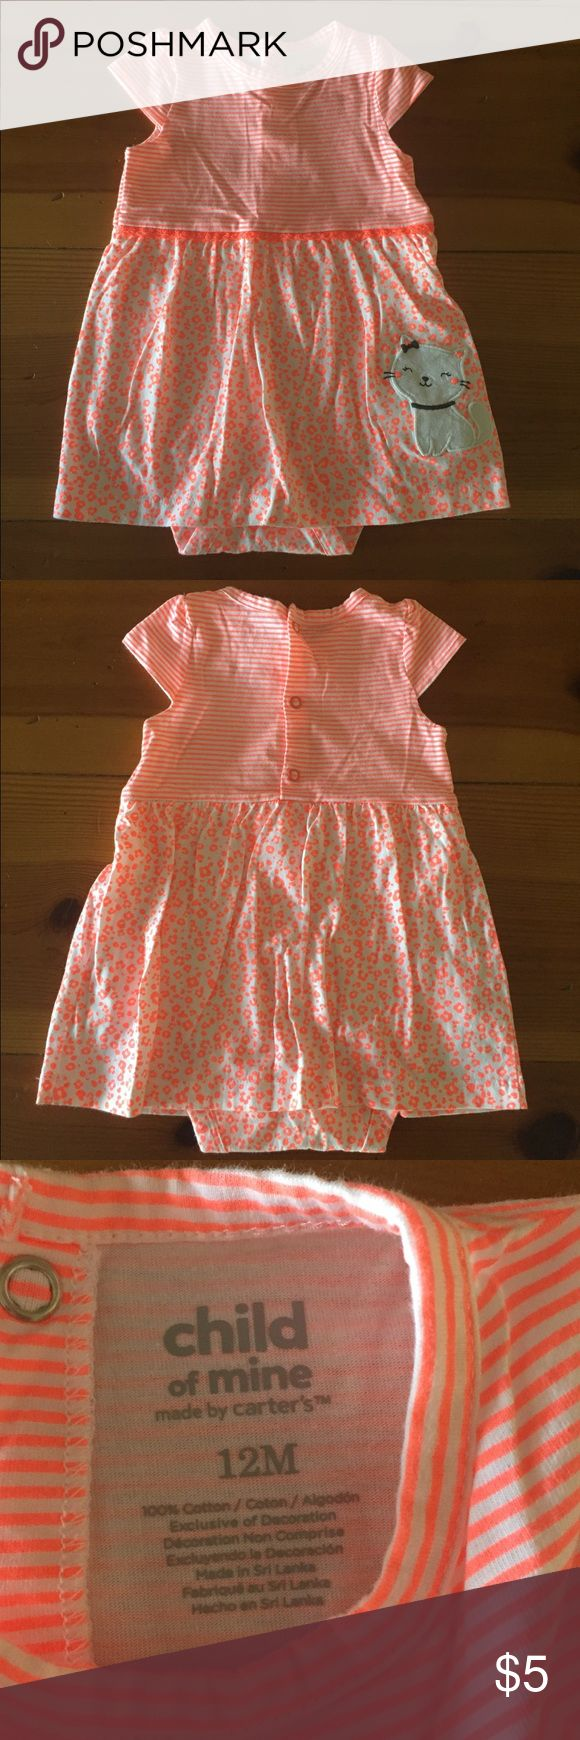 Child of mine cute girls dress size 12 months Never worn only pre washed child of mine by carters brand dress. Size 12 months. Has snaps on the bottom like a onsie top🙂👍🏻. 💜 in excellent condition.  *MUST BUNDLE 2 OR MORE TO RECEIVE AT $5** Carter's Dresses Casual